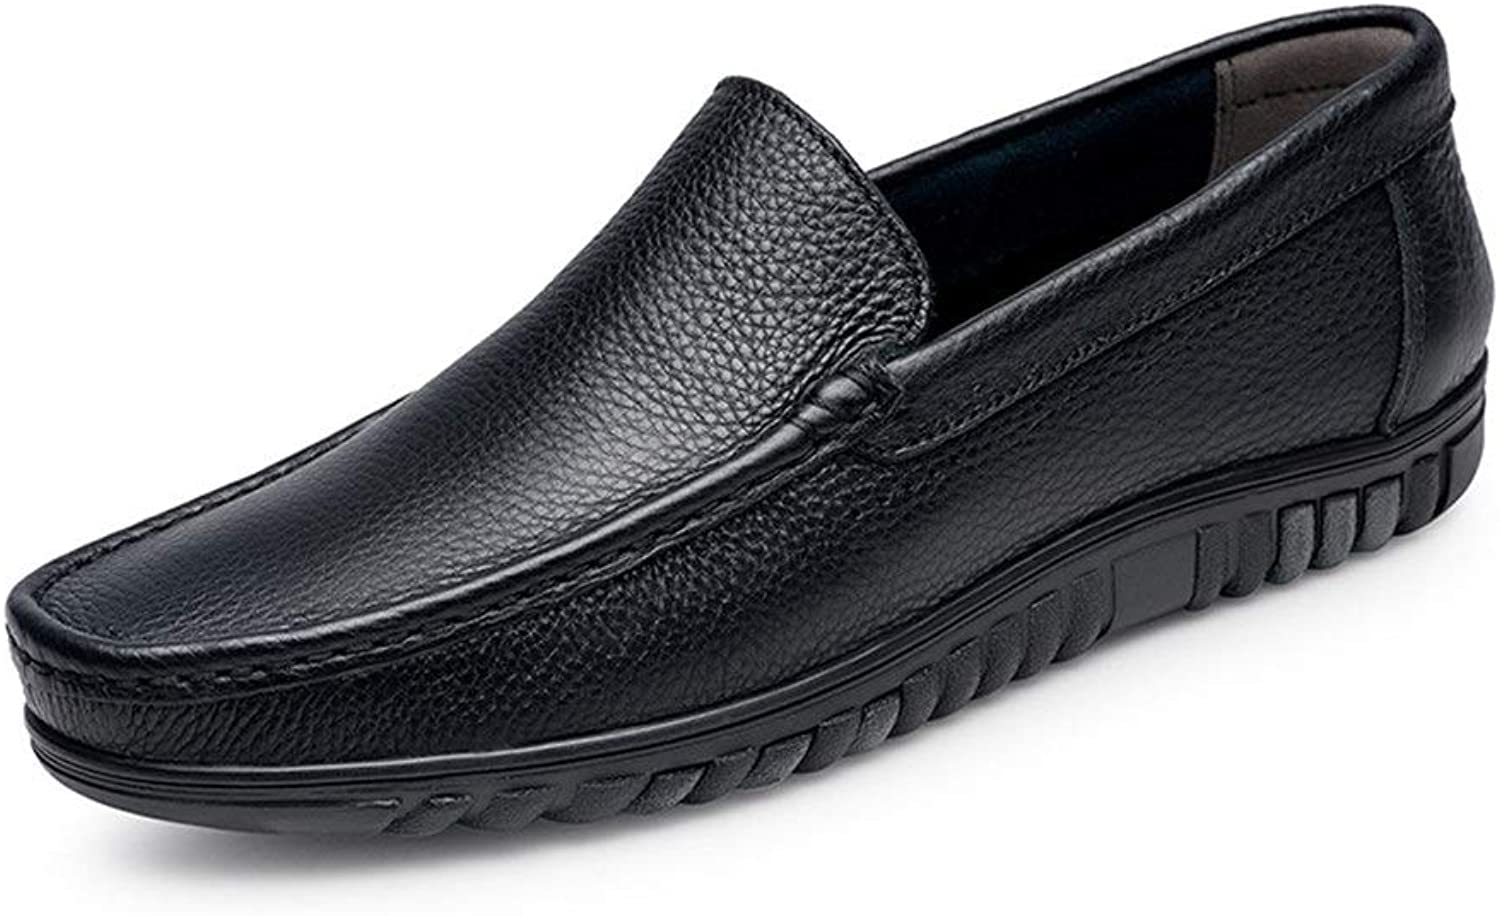 Men's Fashion Driving Loafer for Men Boat Moccasins Slip On Style OX Leather Simple Design Low Top Solid color Classic Work Boots,shoes